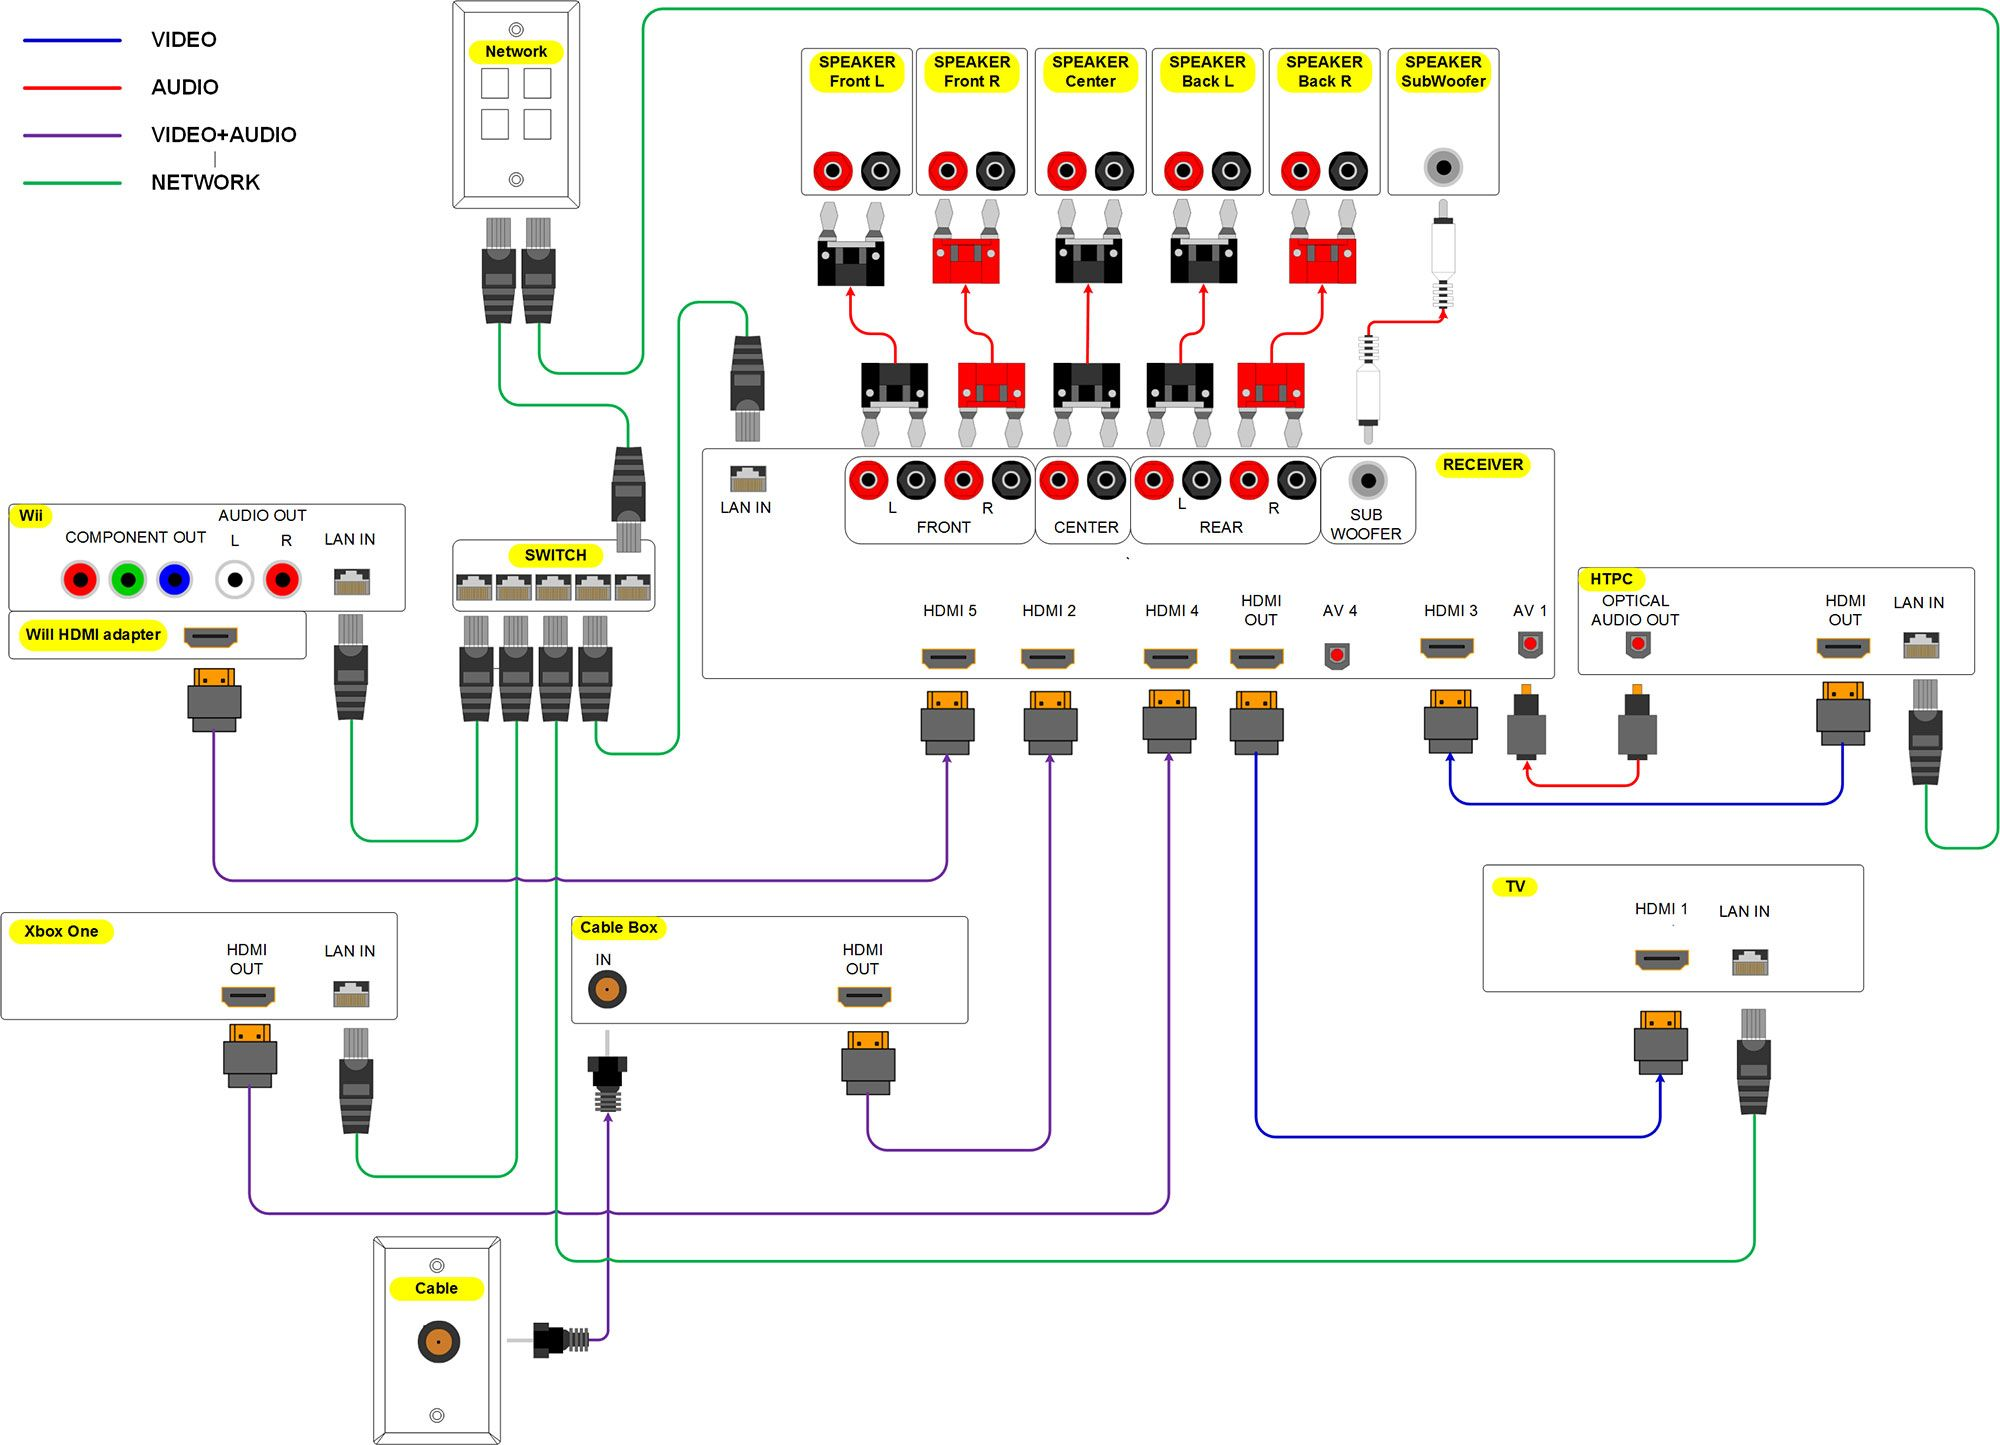 medium resolution of home theater wiring diagram click it to see the big 2000 pixel wide 2000 mustang stereo wiring home stereo wiring